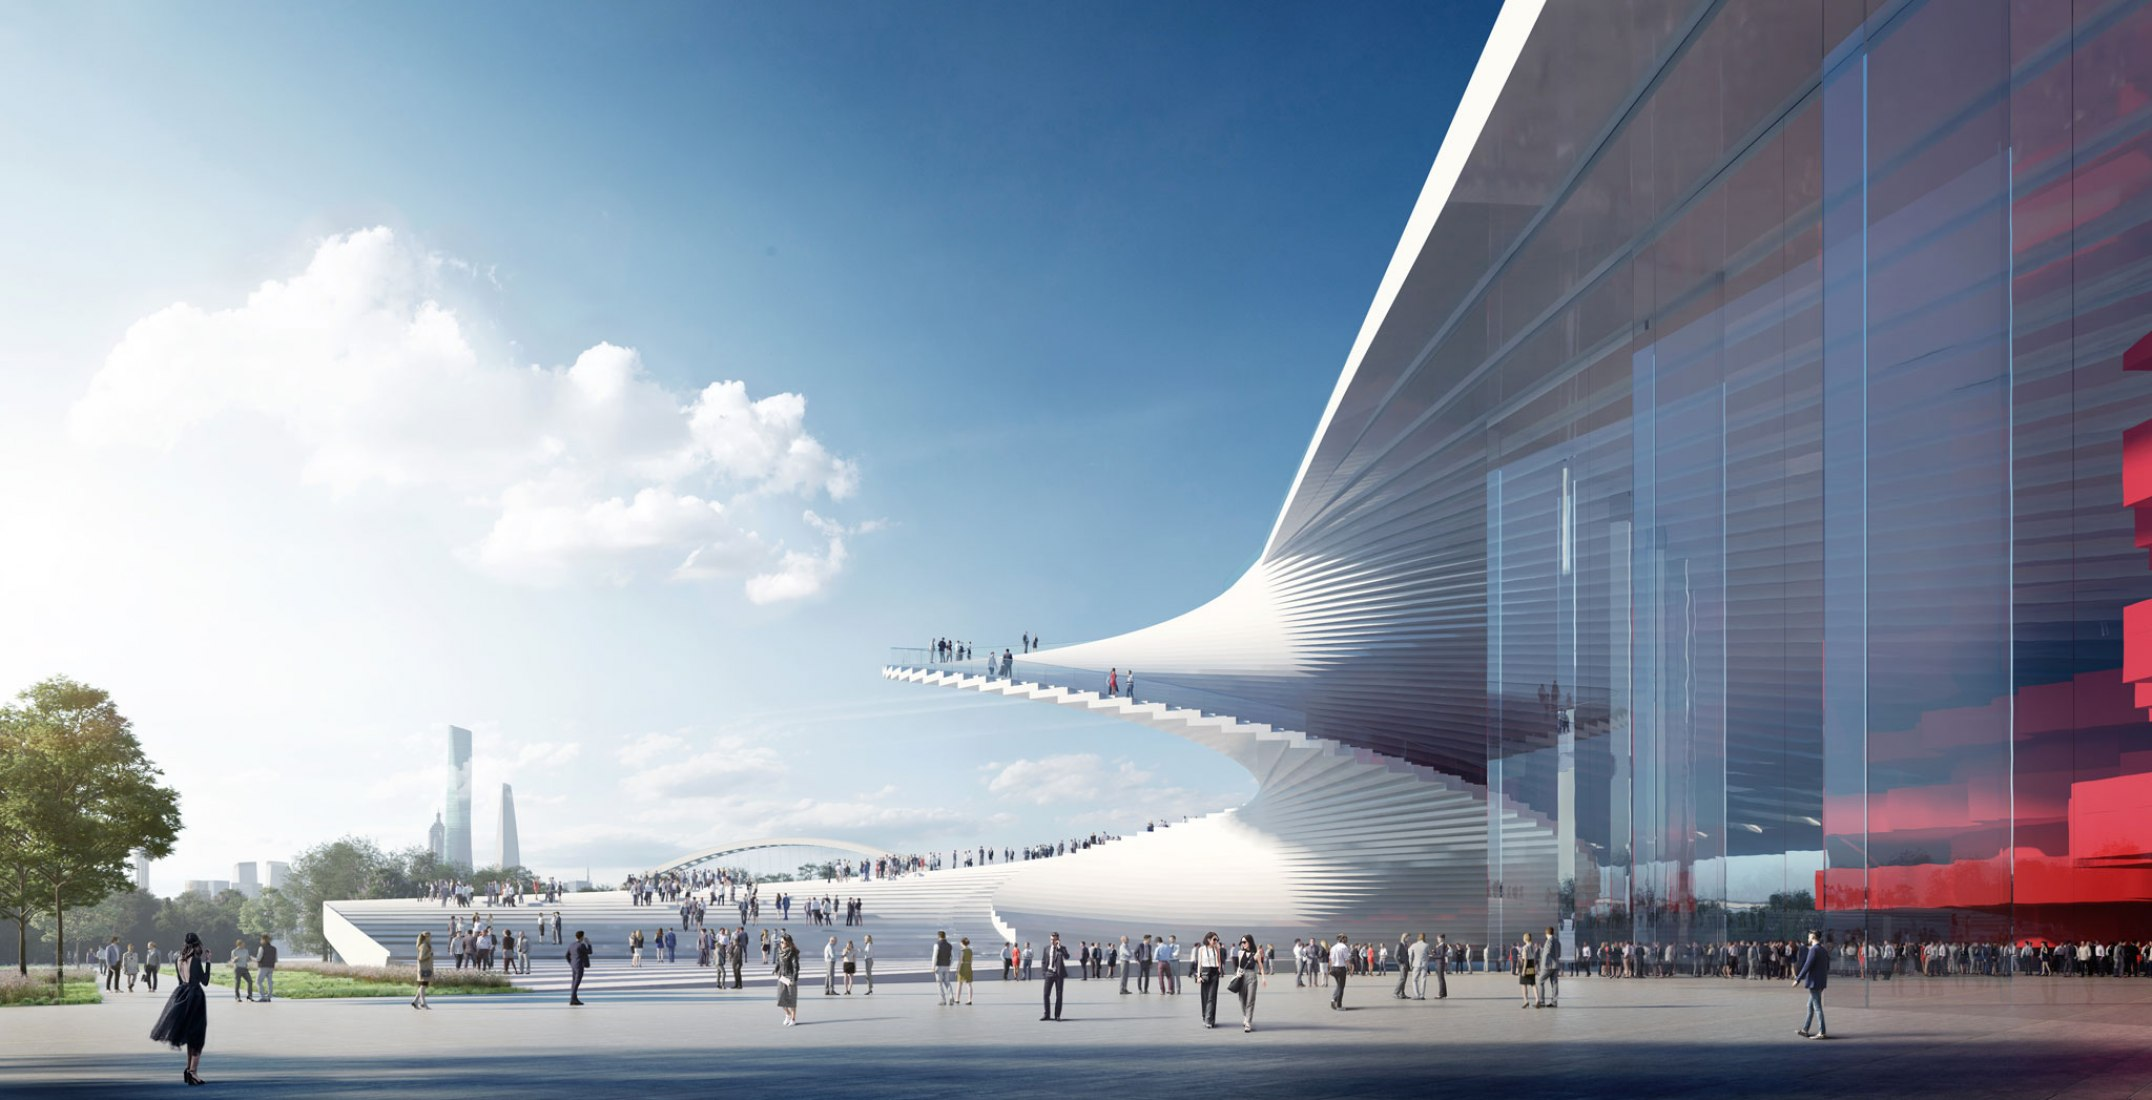 Shanghai Grand Opera House by Snøhetta + ECADI. Rendering by Brick Visuals.